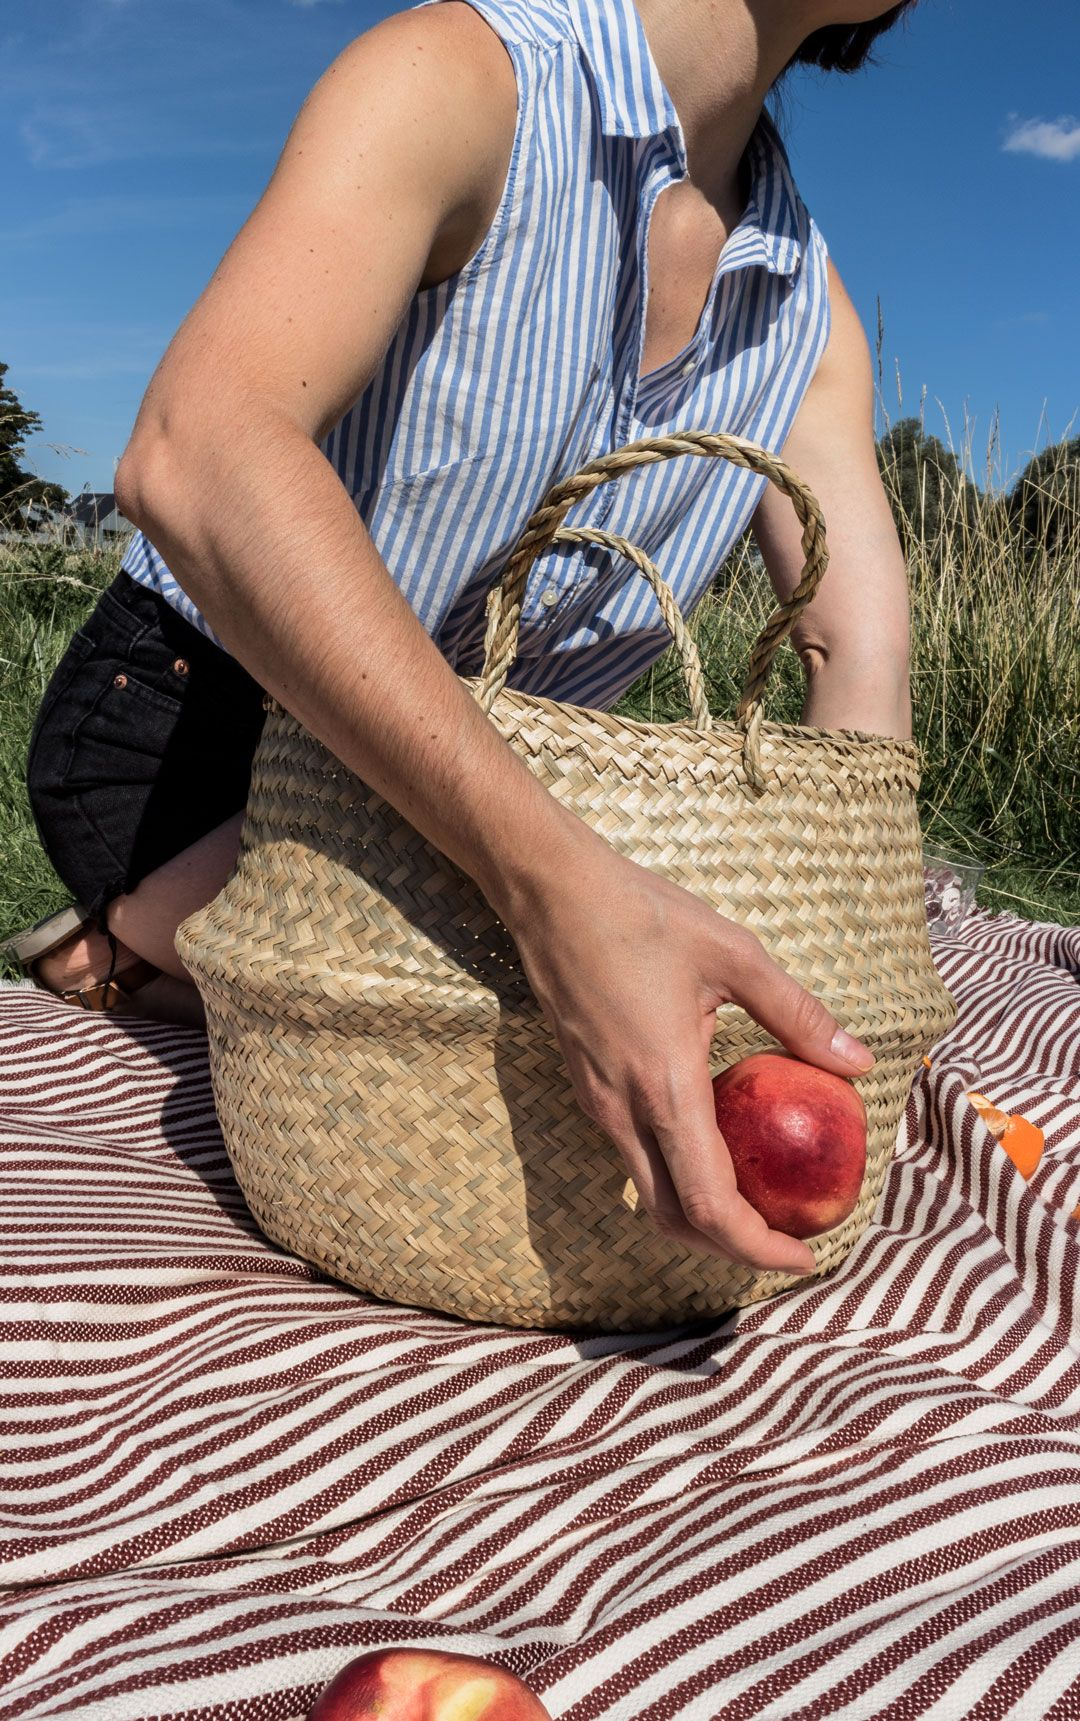 Late Summer Picnic | The net bag that is all over Instagram this summer | IKEA seagrass basket | Lemons and peaches | Summer outfit inspuration | Summer easy outfit | Summer haze | She talks Glam | Cambridge Fashion | Positive Fashion | Saida Antolin | Citrus picnic | Net bag | Mesh bag | Cotton bag | Easy summer picnic